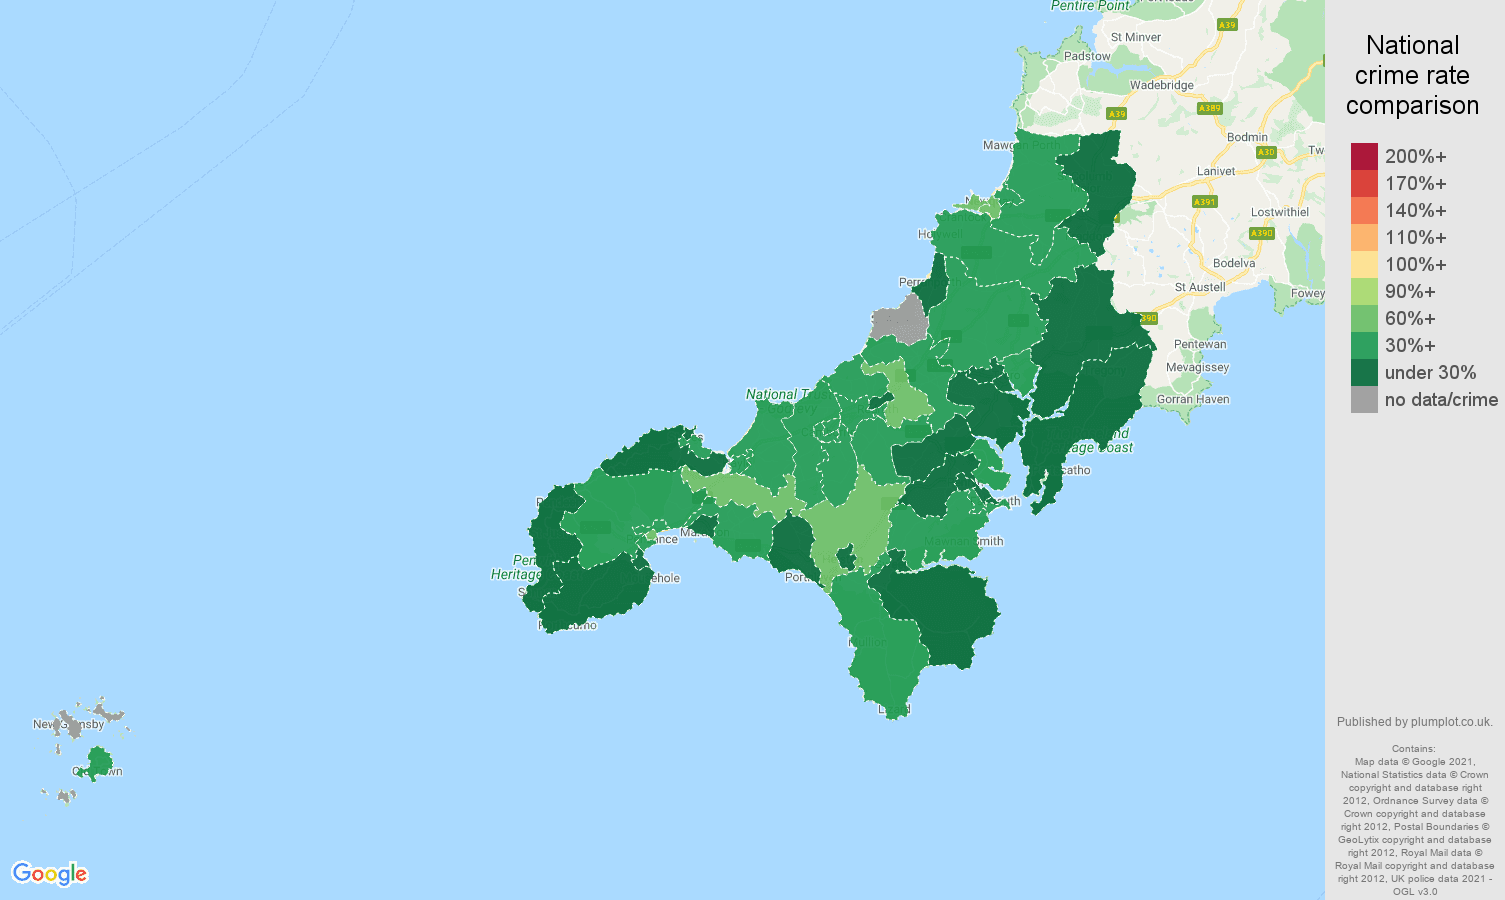 Truro burglary crime rate comparison map